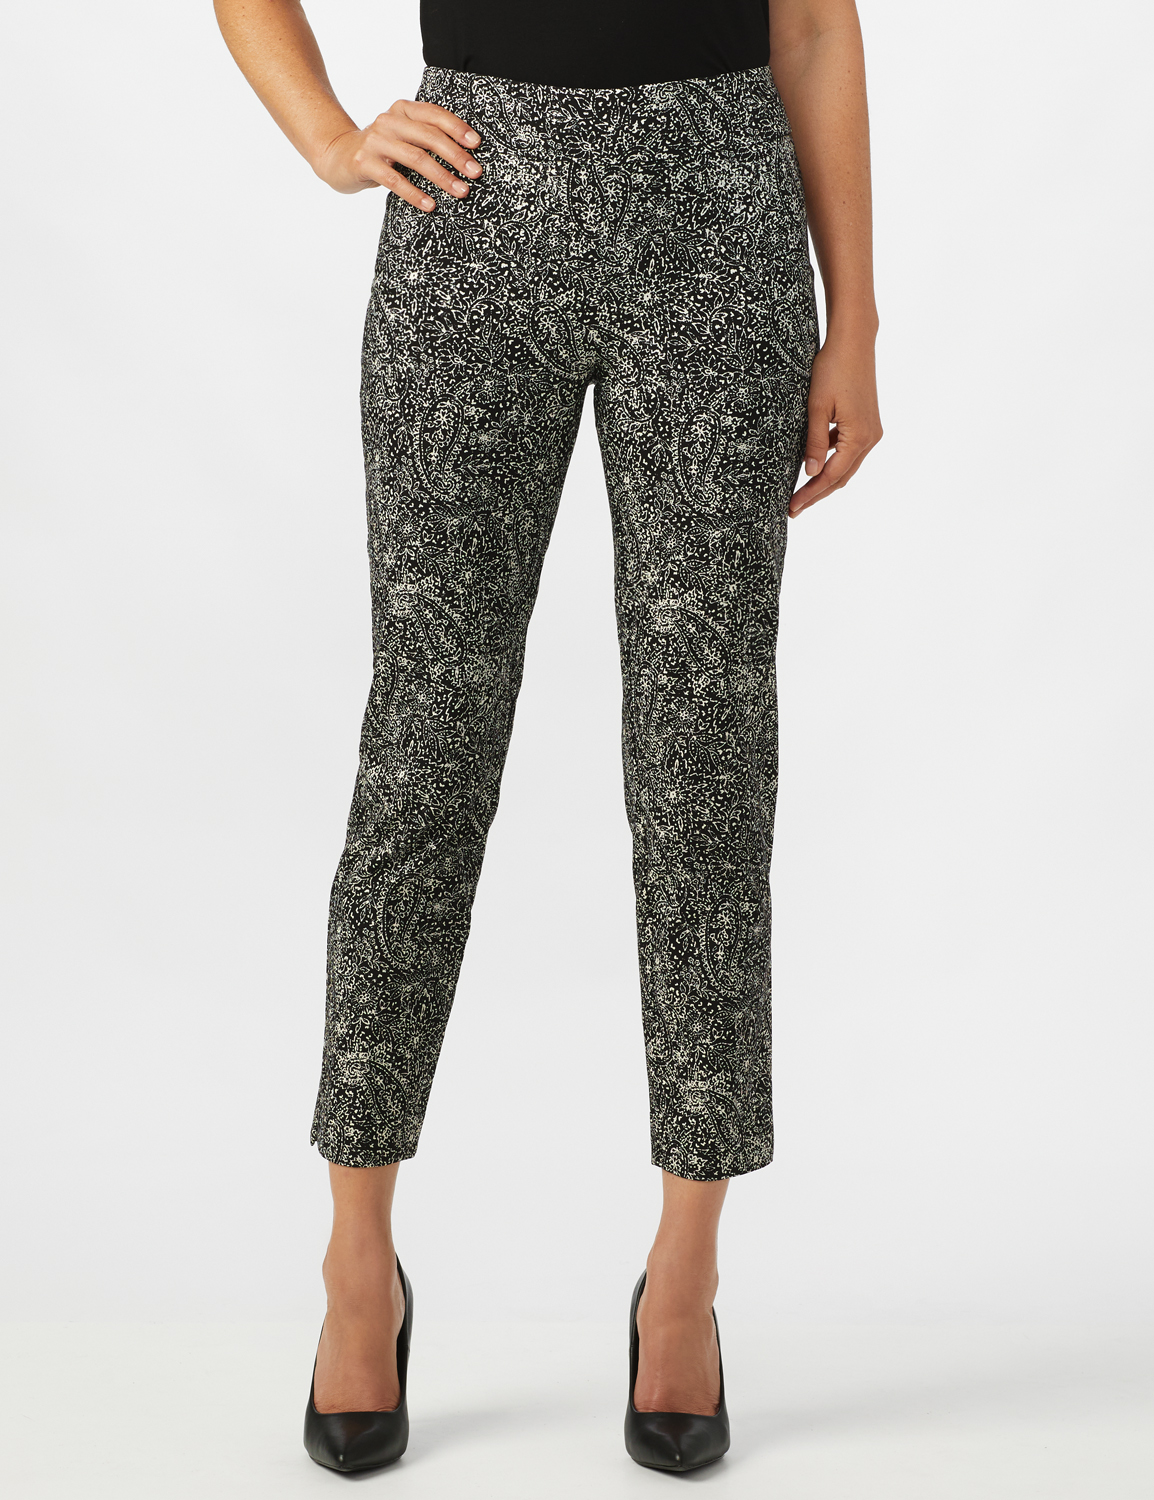 Roz & Ali Paisley Print Superstretch Pull On Ankle Pants With Slits -Black Pattern - Front